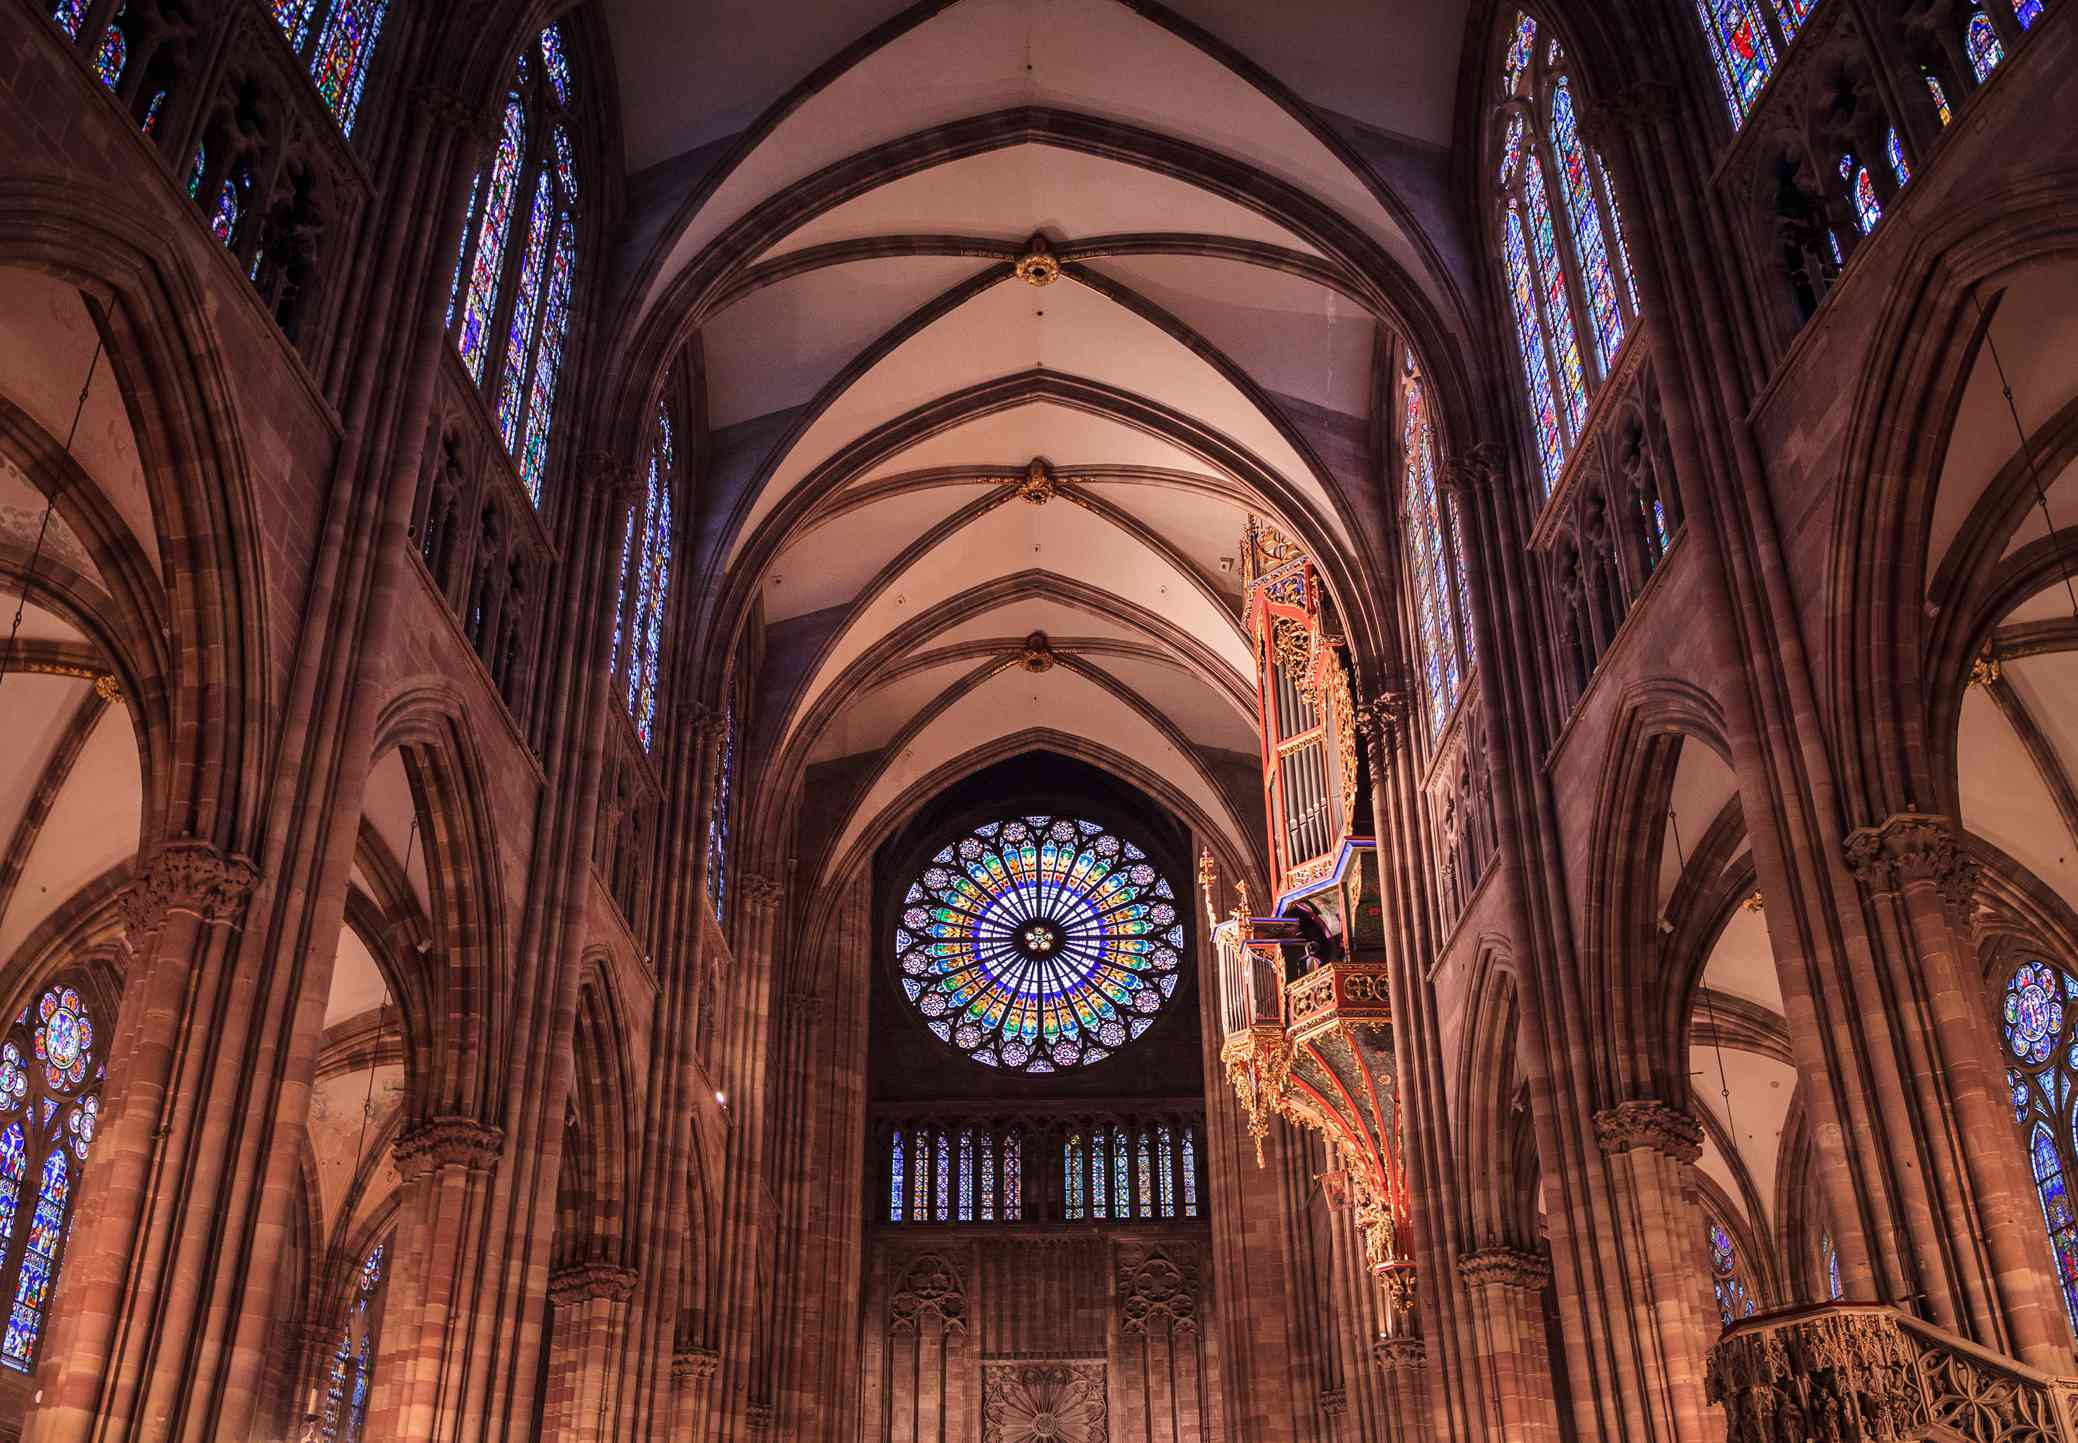 The great organ and Rose window of Cathédrale Notre Dame de Strasbourg / Strasbourg Cathedral